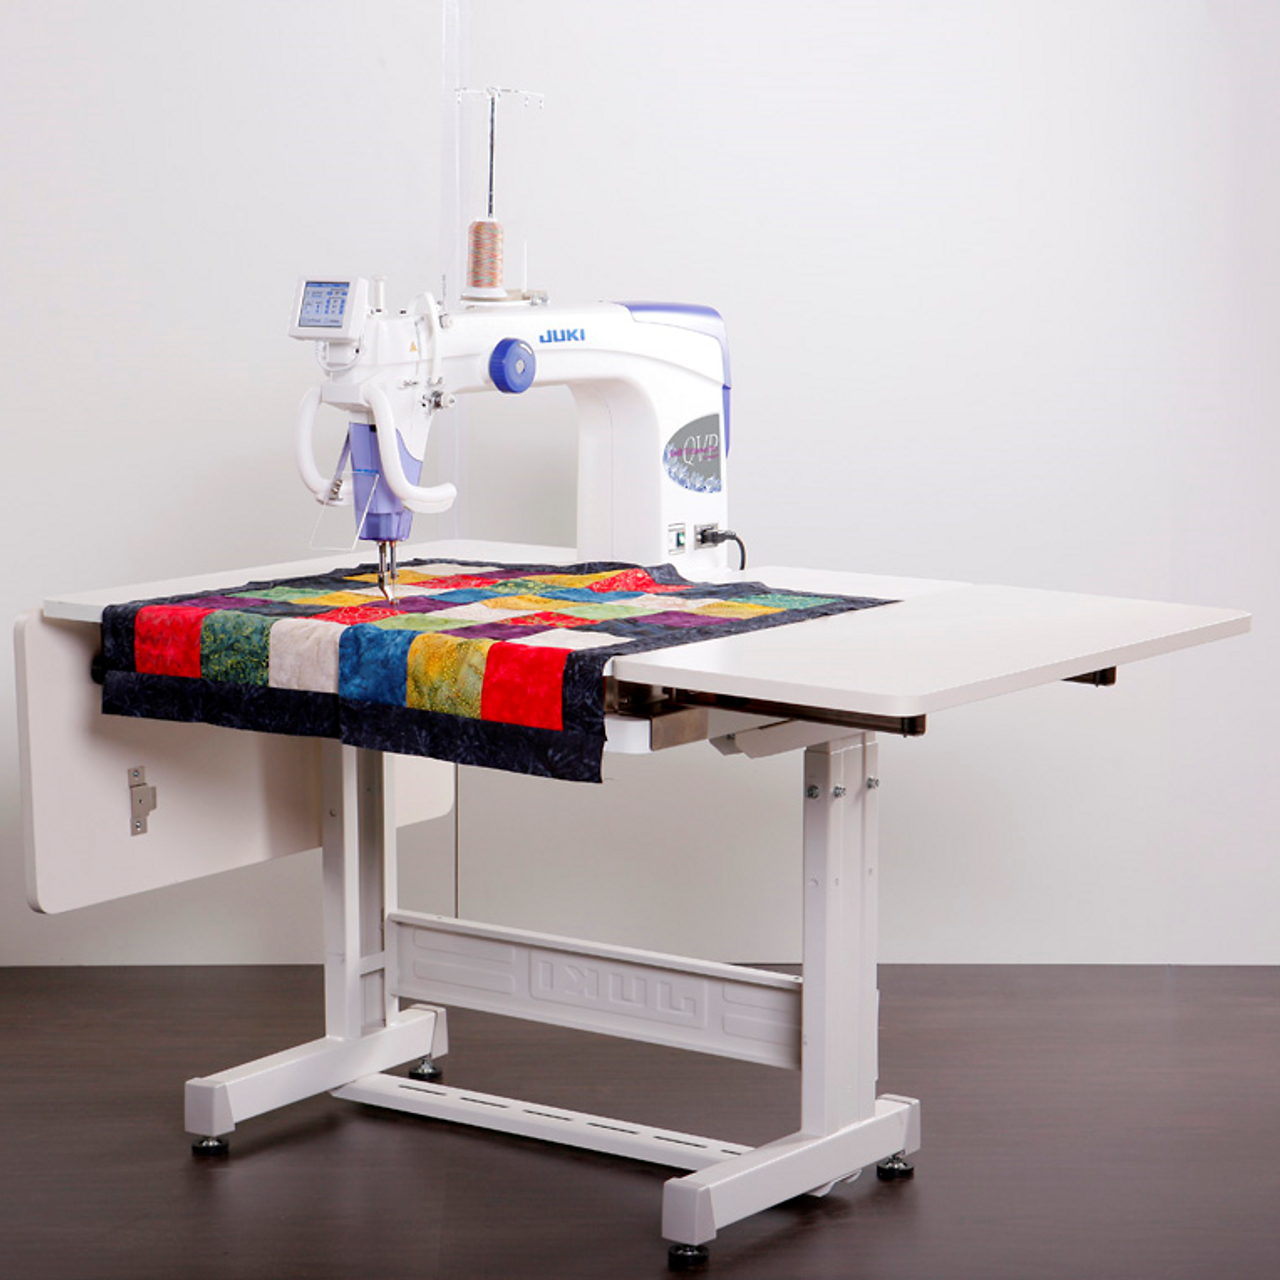 Juki TL40QVPS Long Arm Quilting Machine With Sit Down Table Delectable Free Arm Quilting Sewing Machine